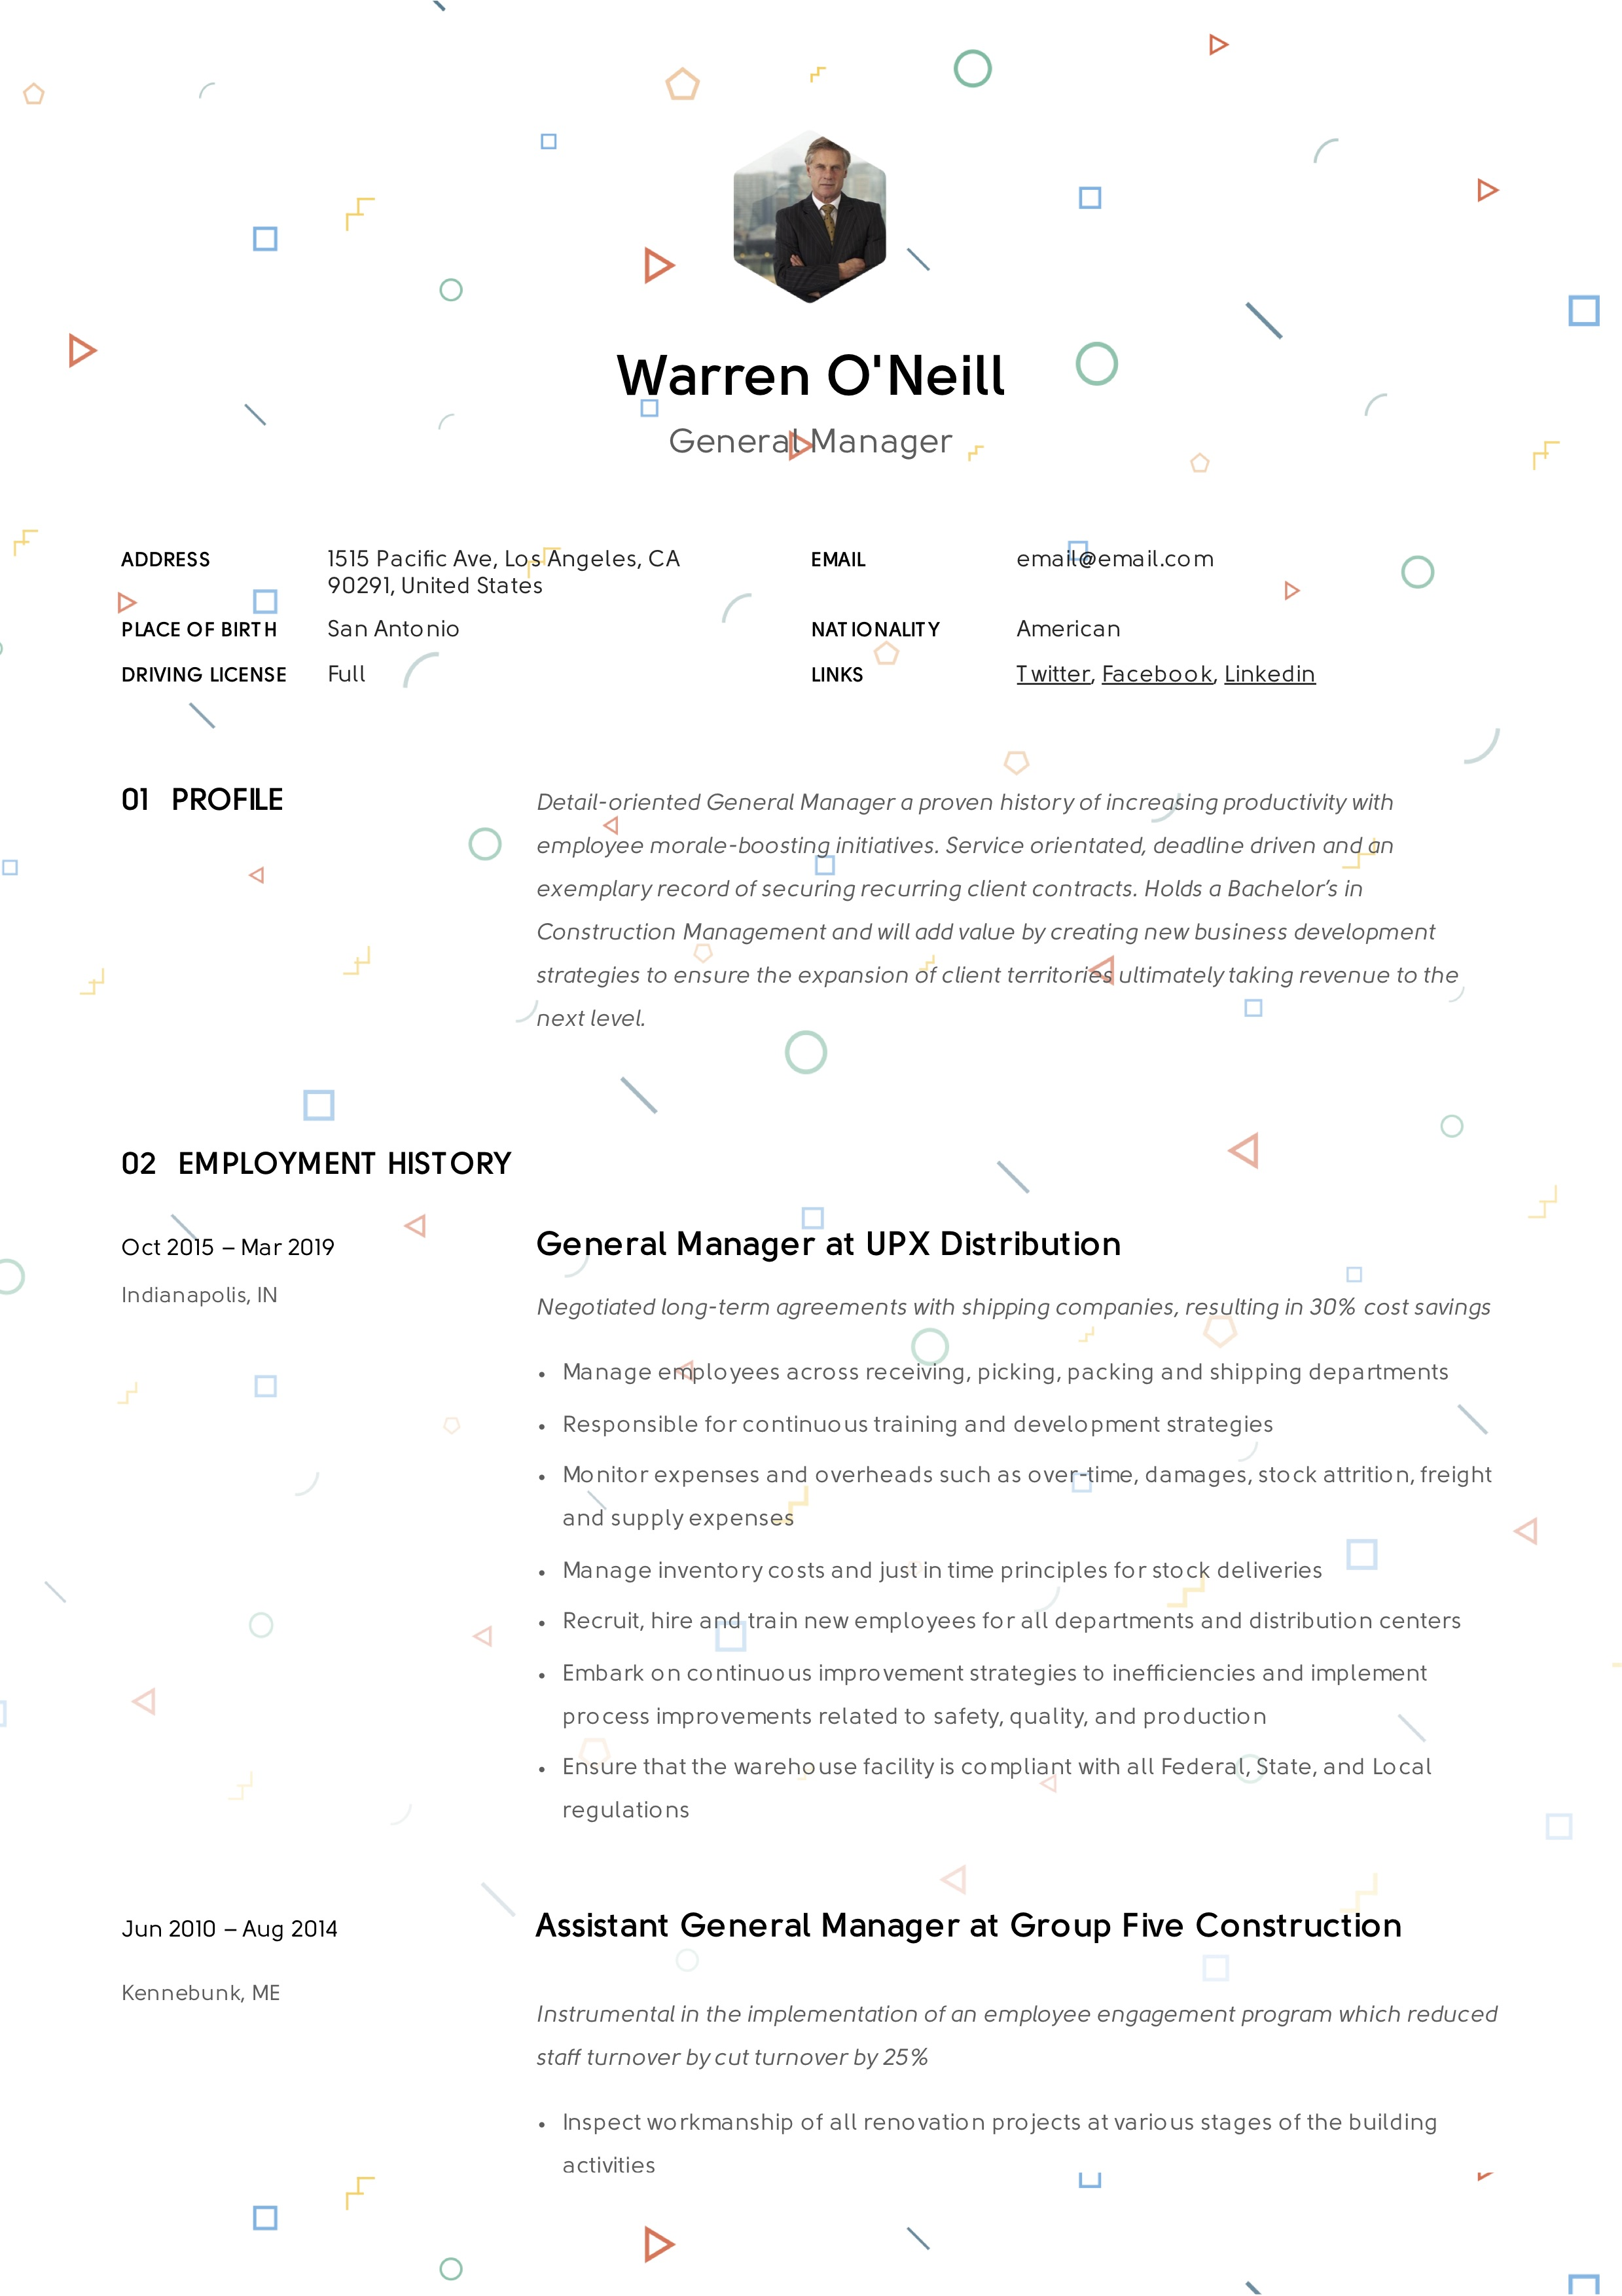 Warren_O_Neill_-_Resume_-_General_Manager (7)